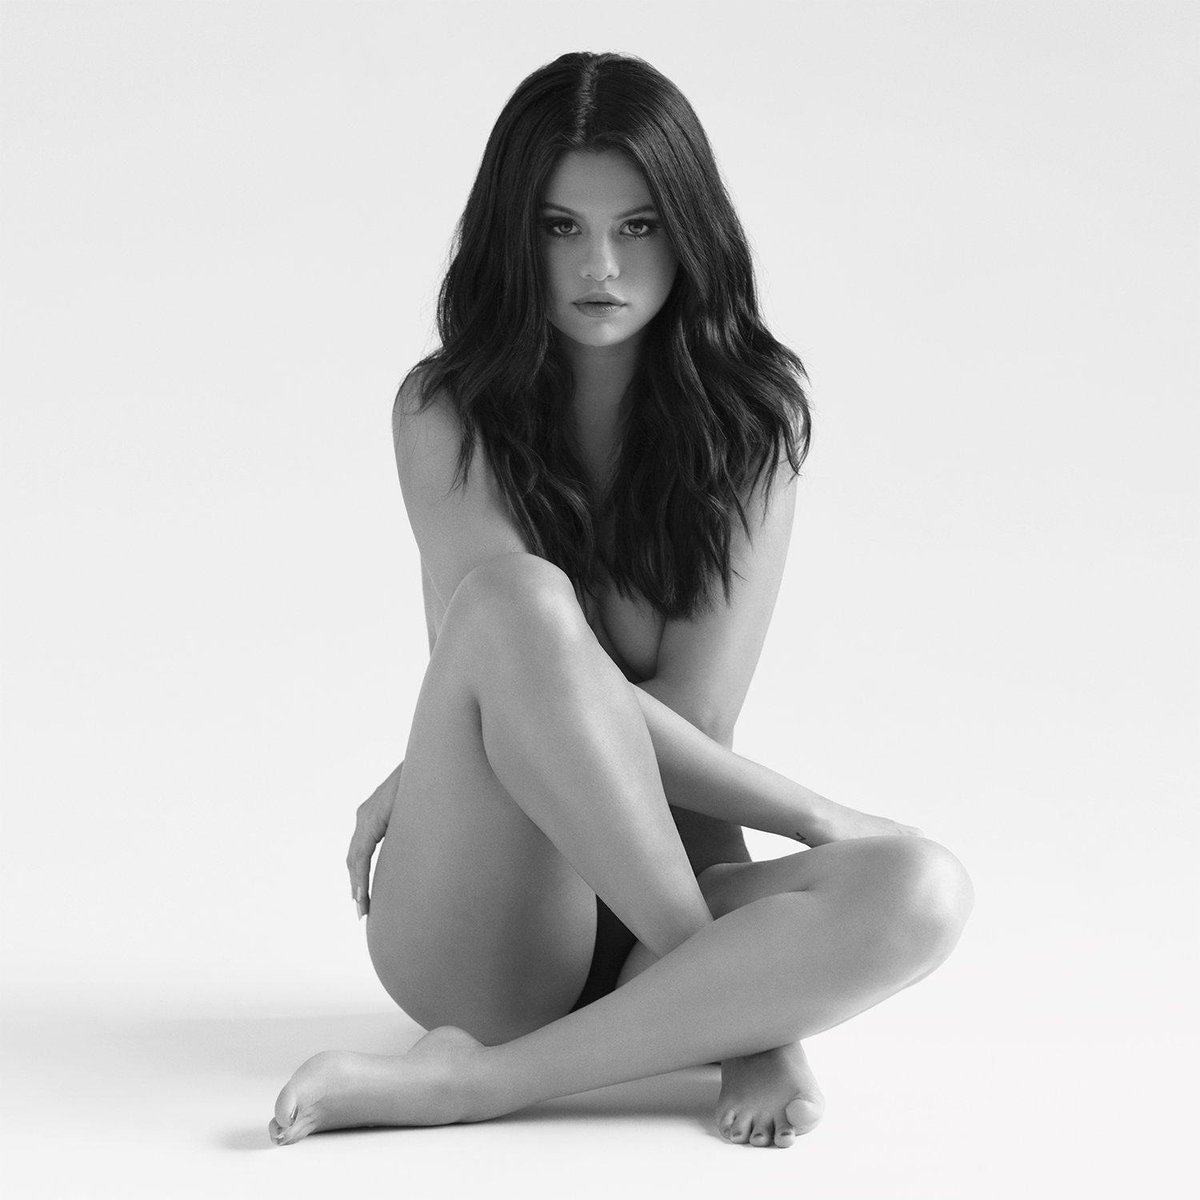 .@SelenaGomez's #Revival rivals Carly Rae Jepsen's #Emotion for breakout pop album of 2015: http://t.co/kTCEZWVlf2 http://t.co/qpLTCBPedX